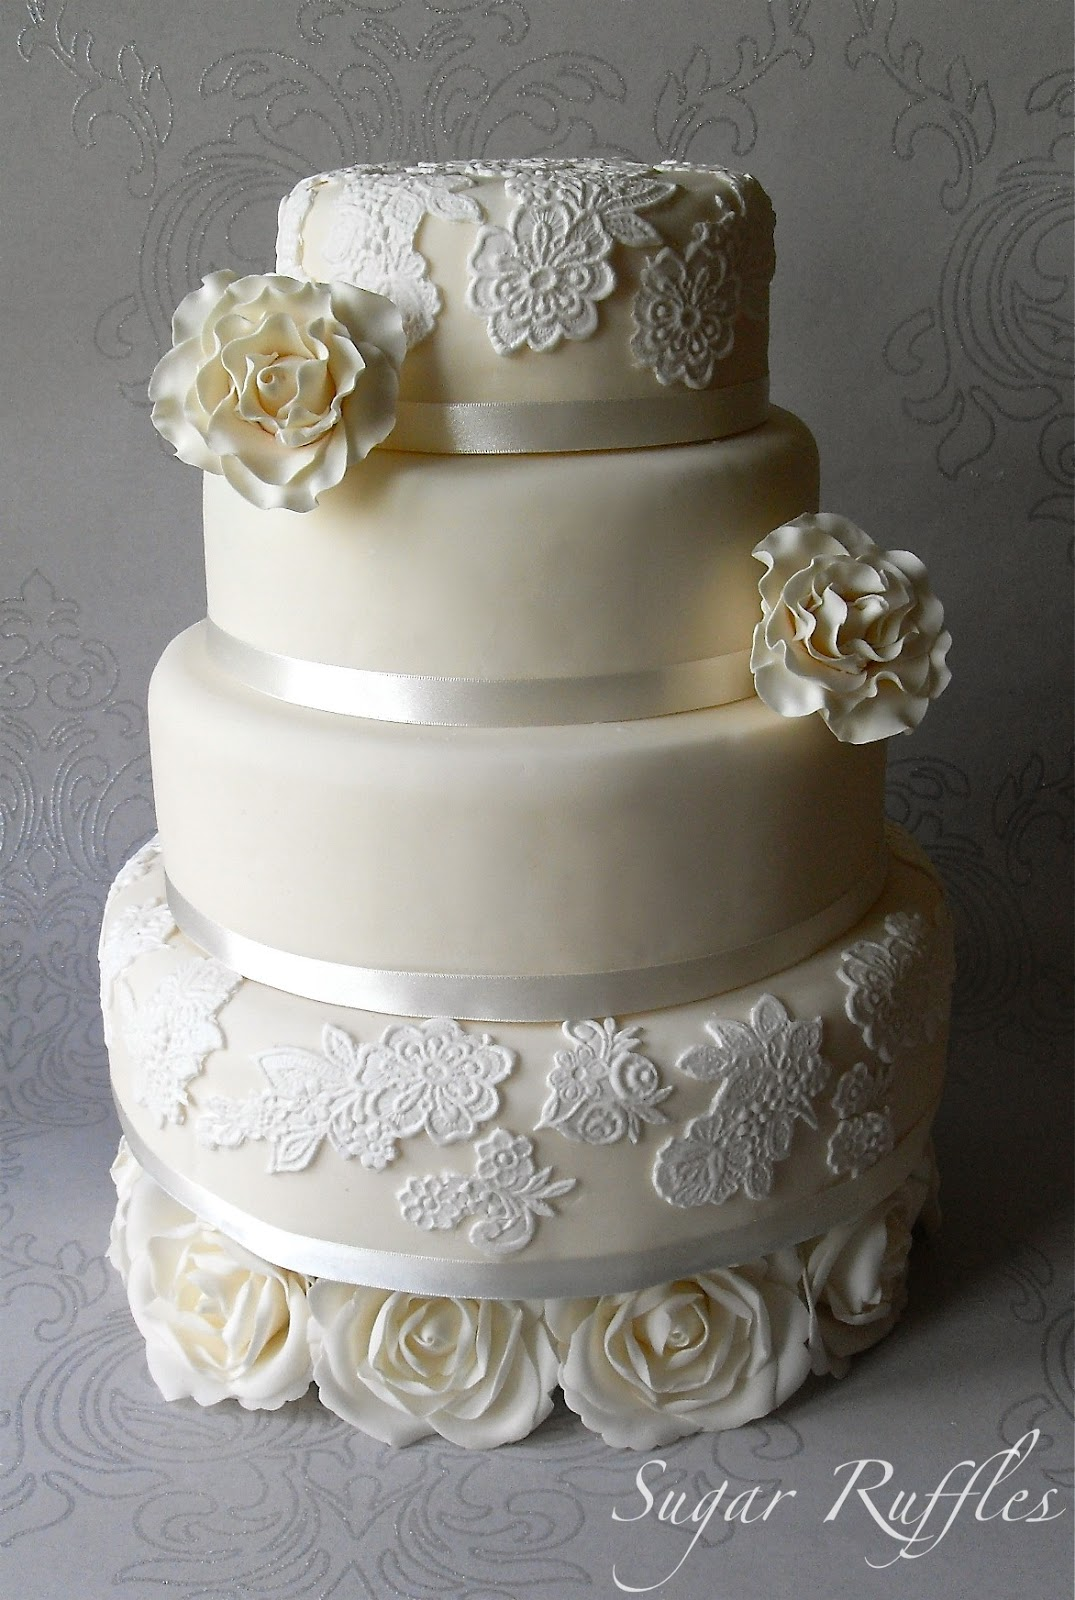 Sugar Ruffles Elegant Wedding Cakes Barrow In Furness